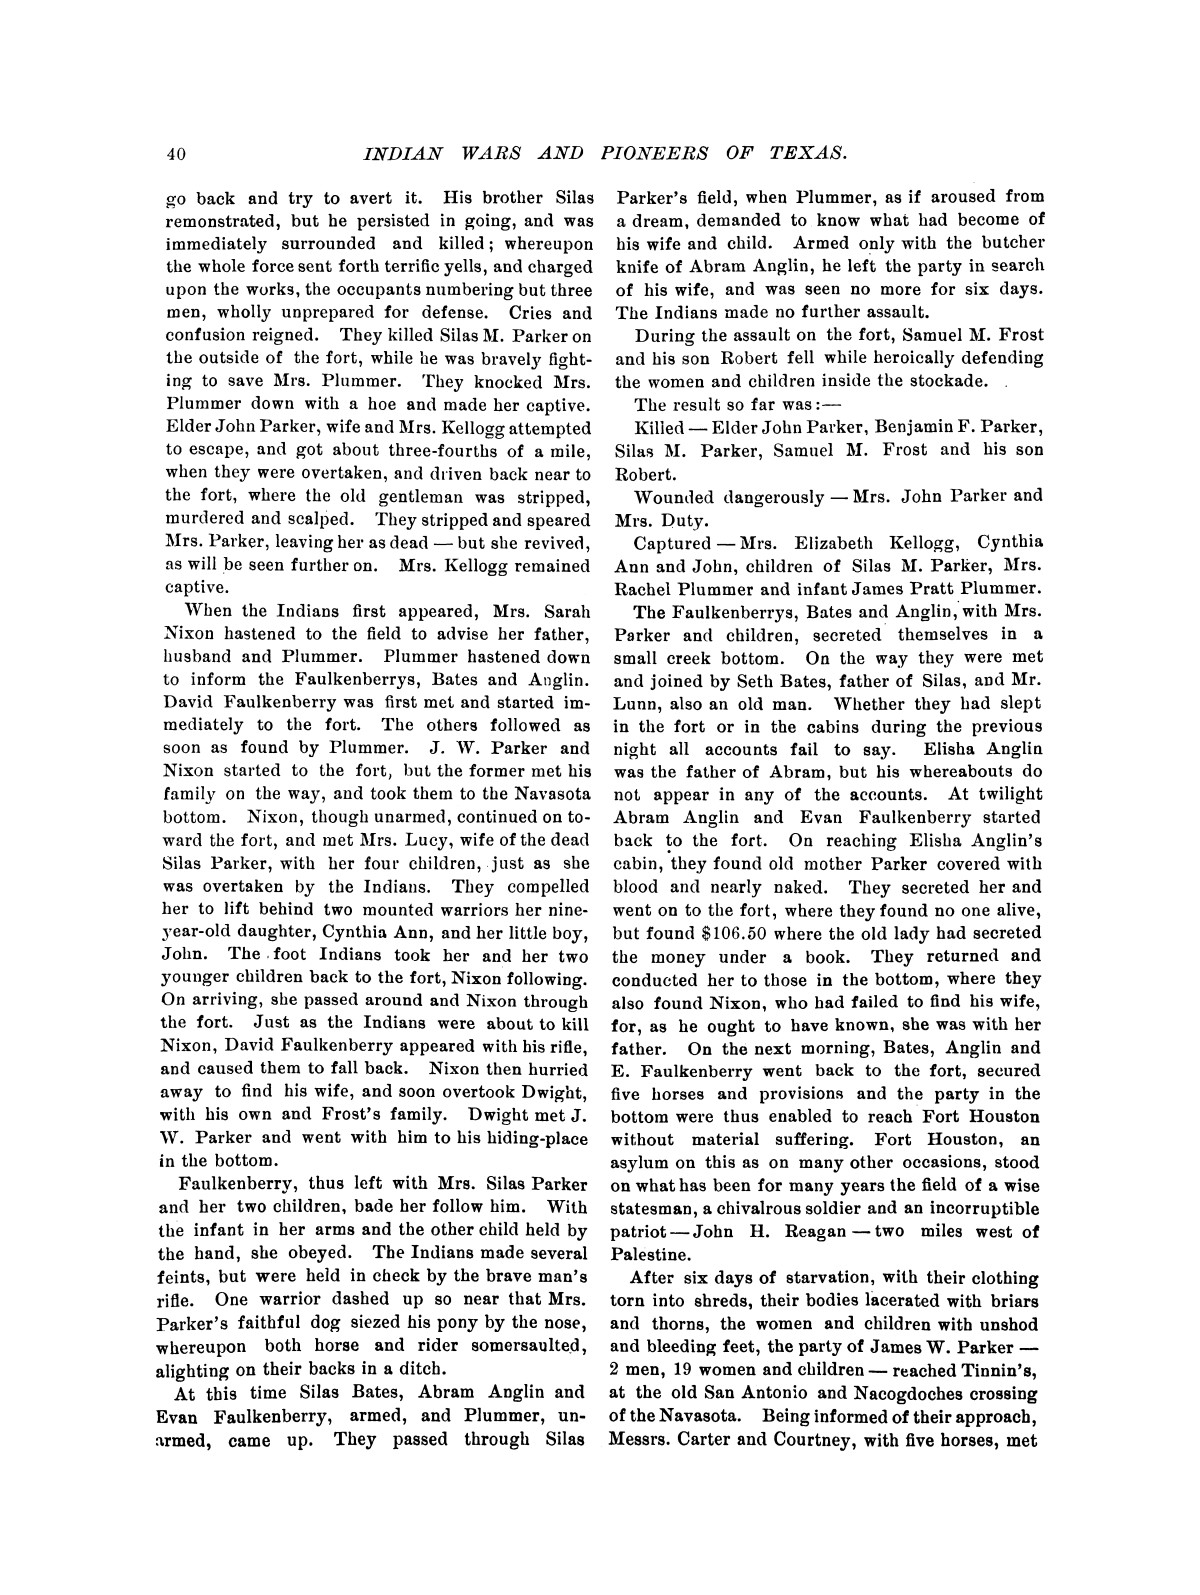 Indian wars and pioneers of Texas / by John Henry Brown.                                                                                                      [Sequence #]: 48 of 894